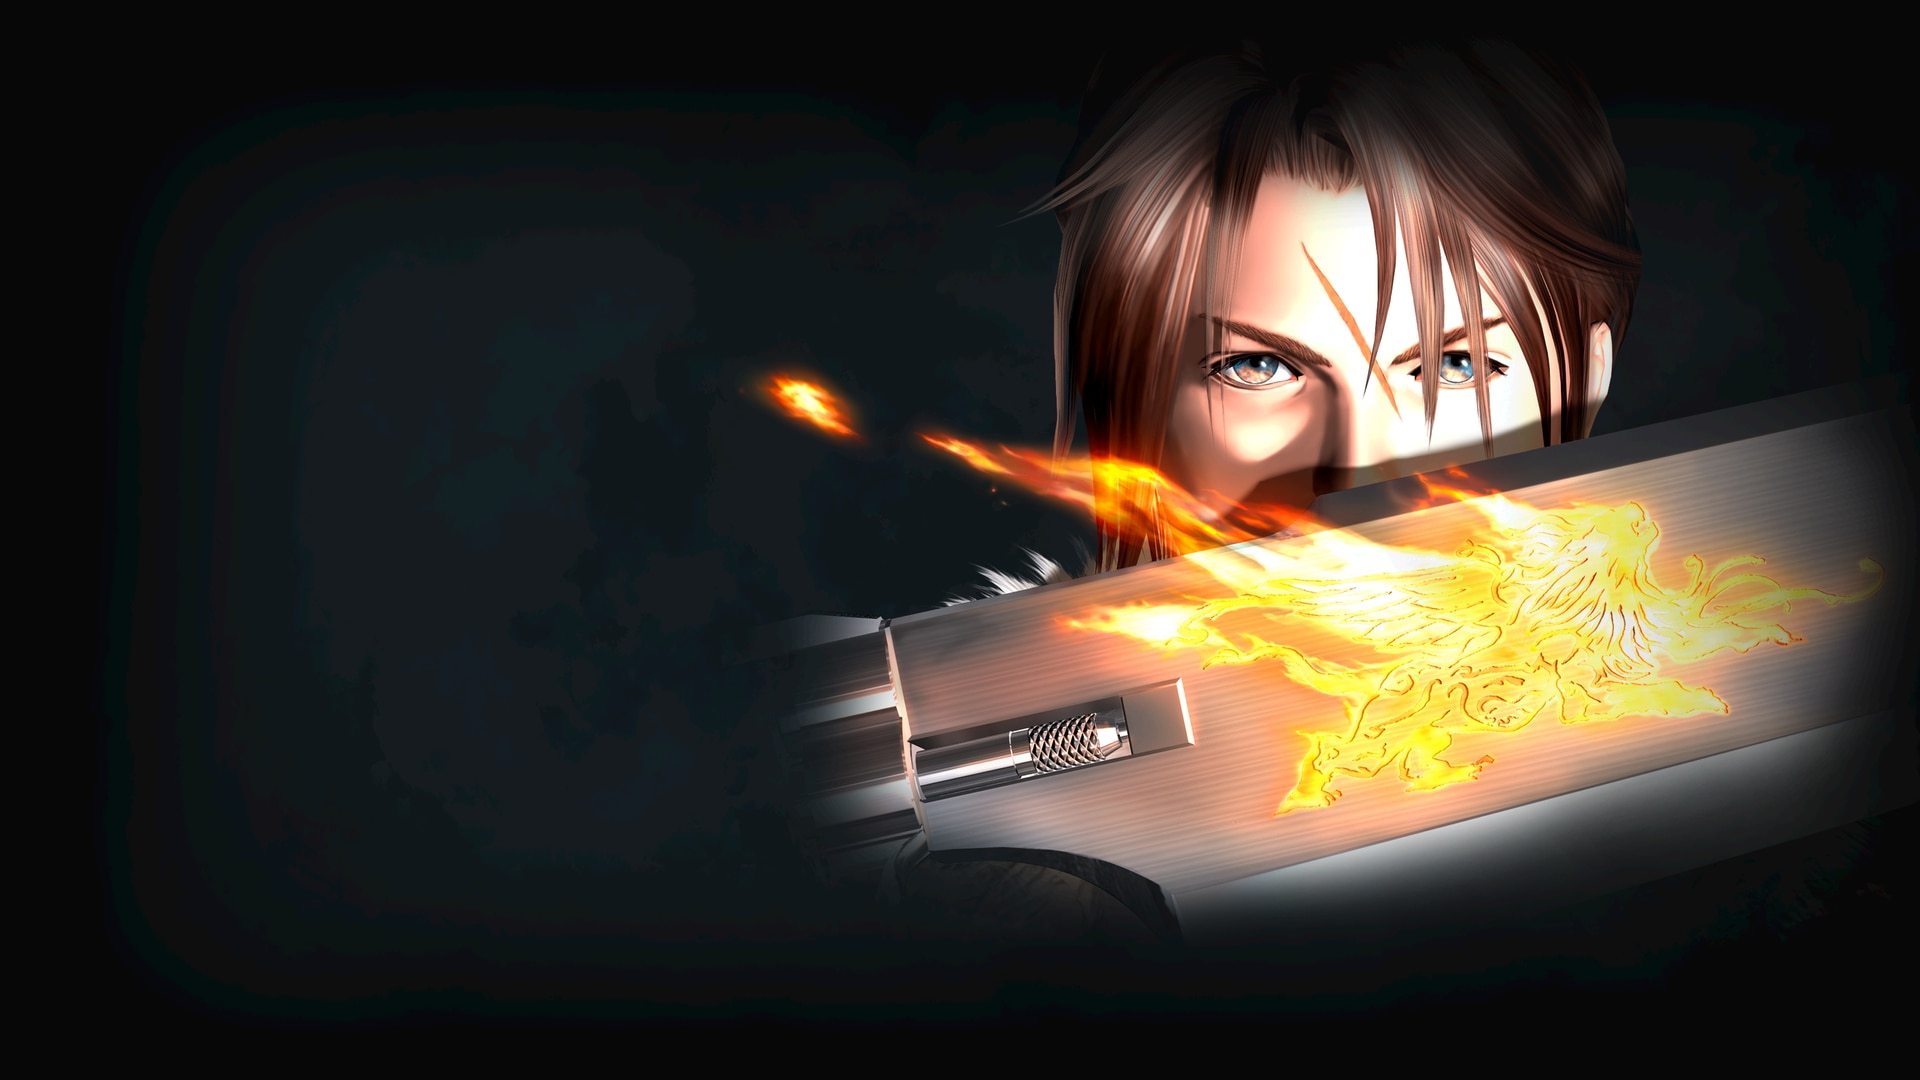 FINAL FANTASY VIII Remastered (English/Japanese Ver.)